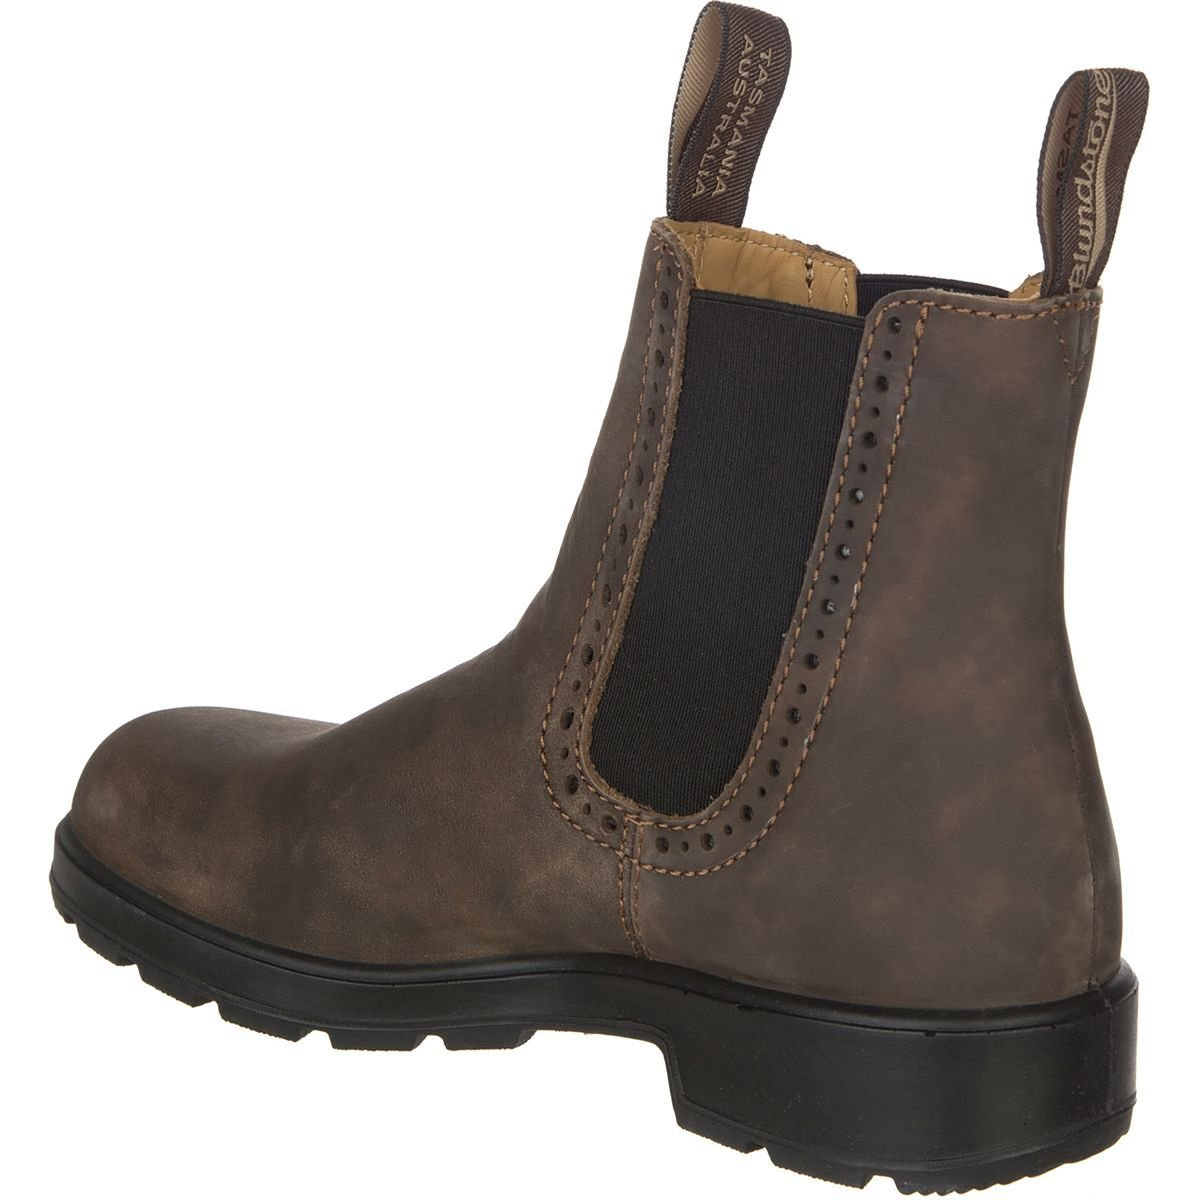 Blundstone Women's 1351 Chelsea Boots, US Rustic Brown, 8.5 B(M) US Boots, - 5.5 AU cb5260